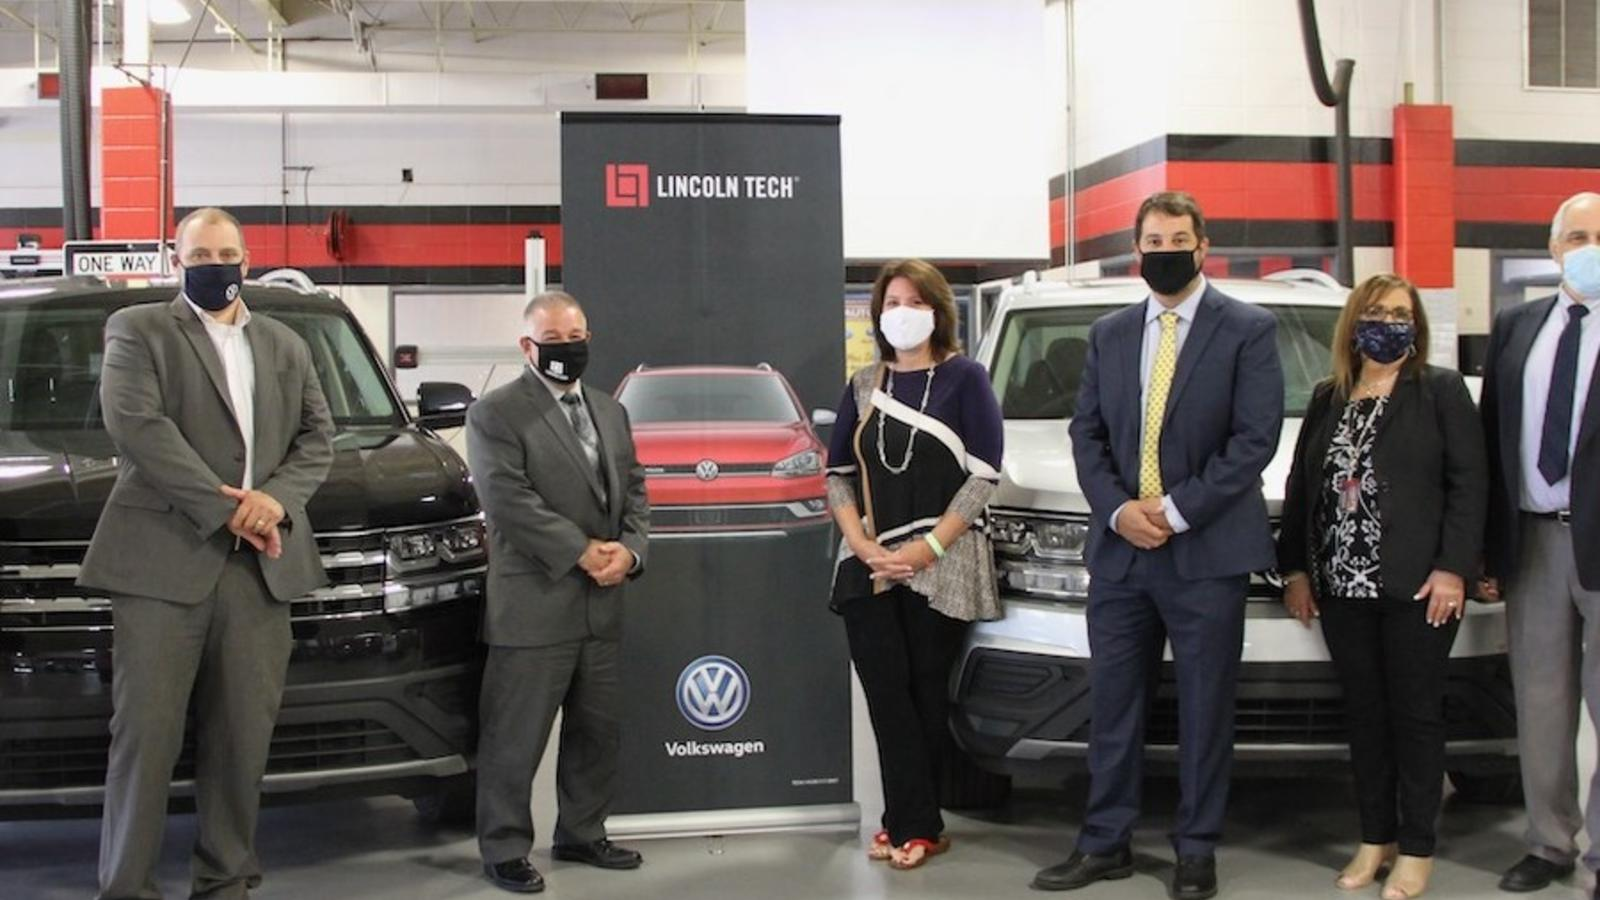 Representatives of both Volkswagen of America and Lincoln Tech meet to accept two new VW Atlas vehicles into the Lincoln Tech training fleet.